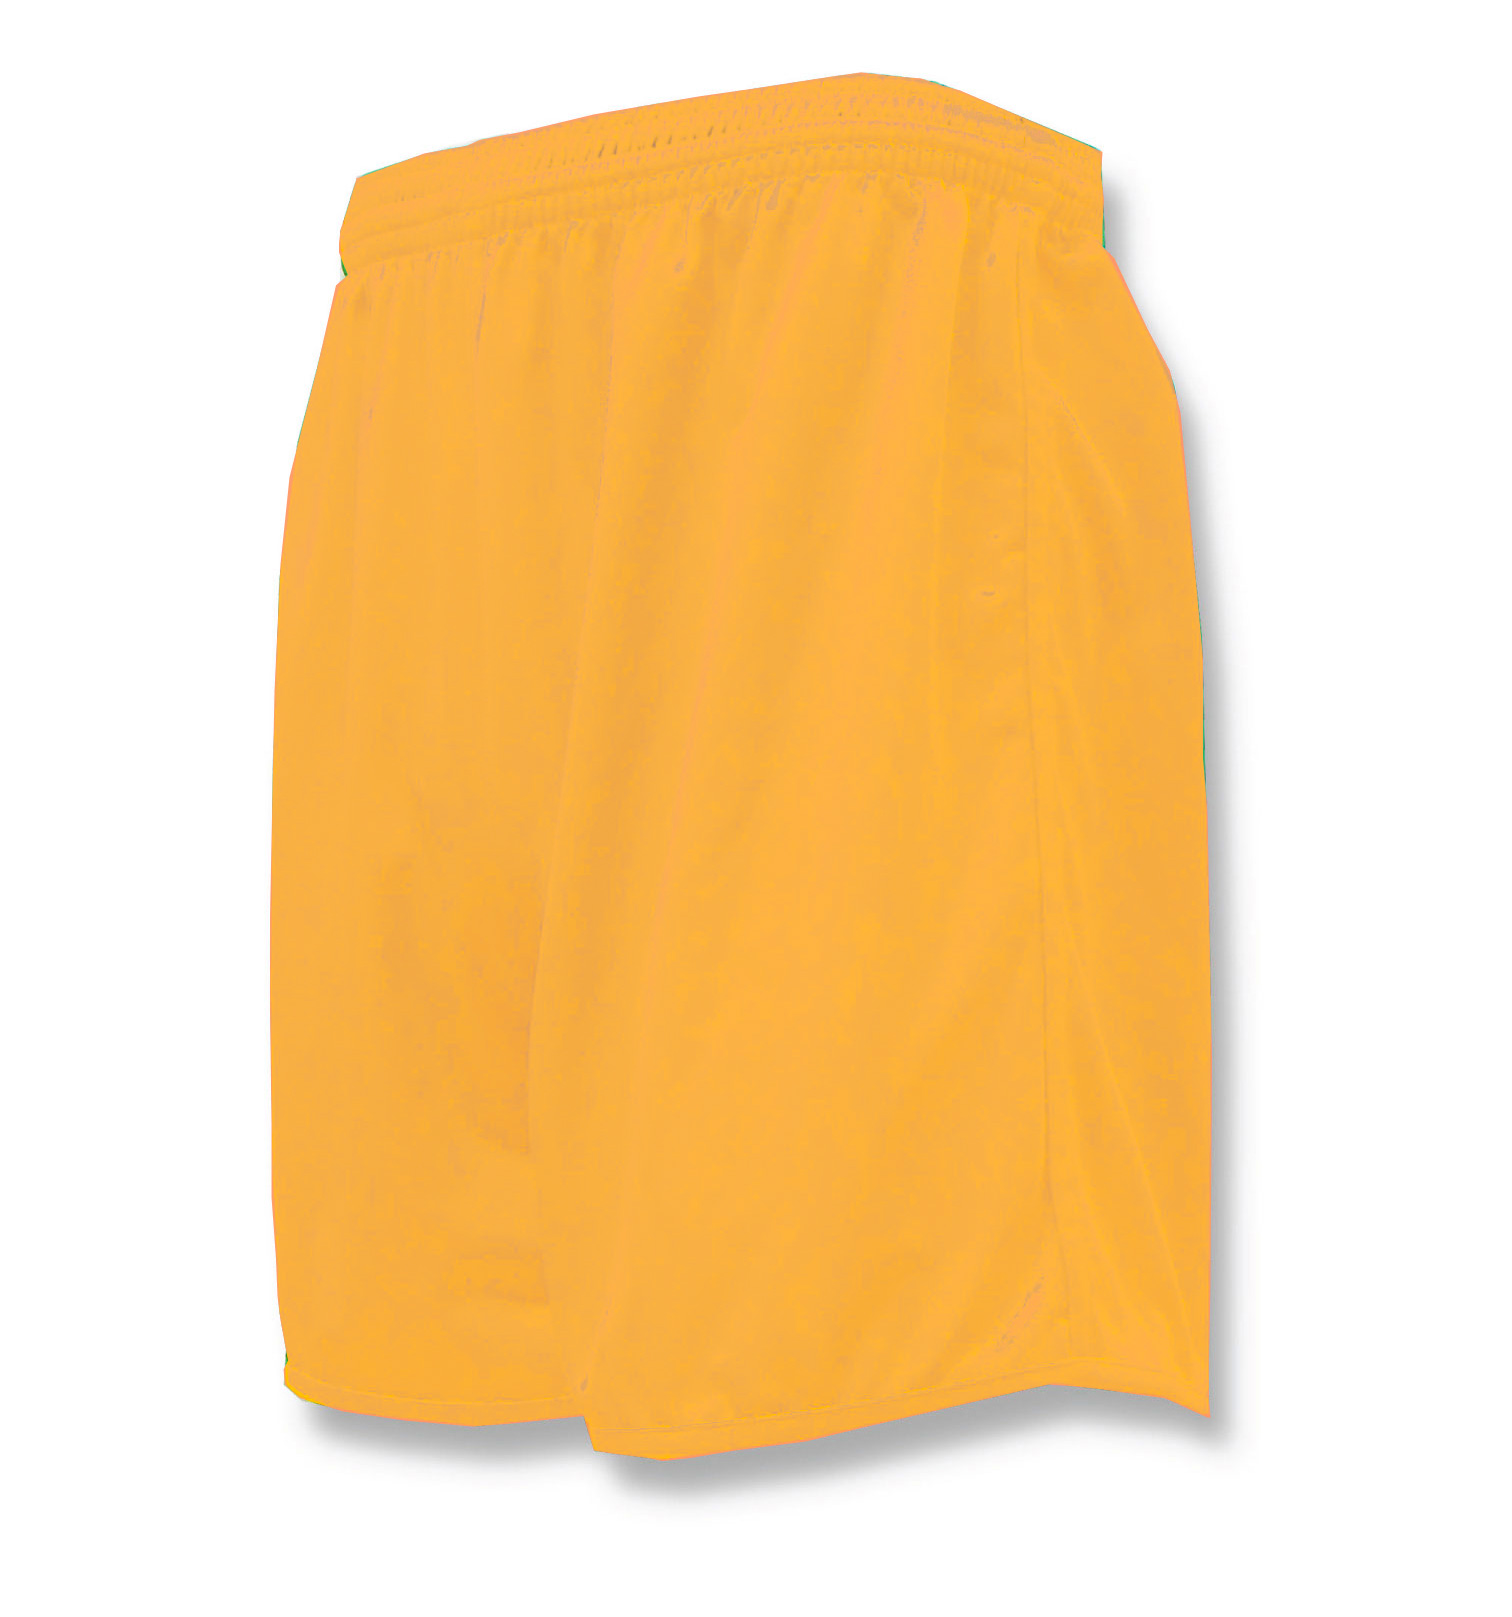 Bravo soccer shorts in gold by Code Four Athletics